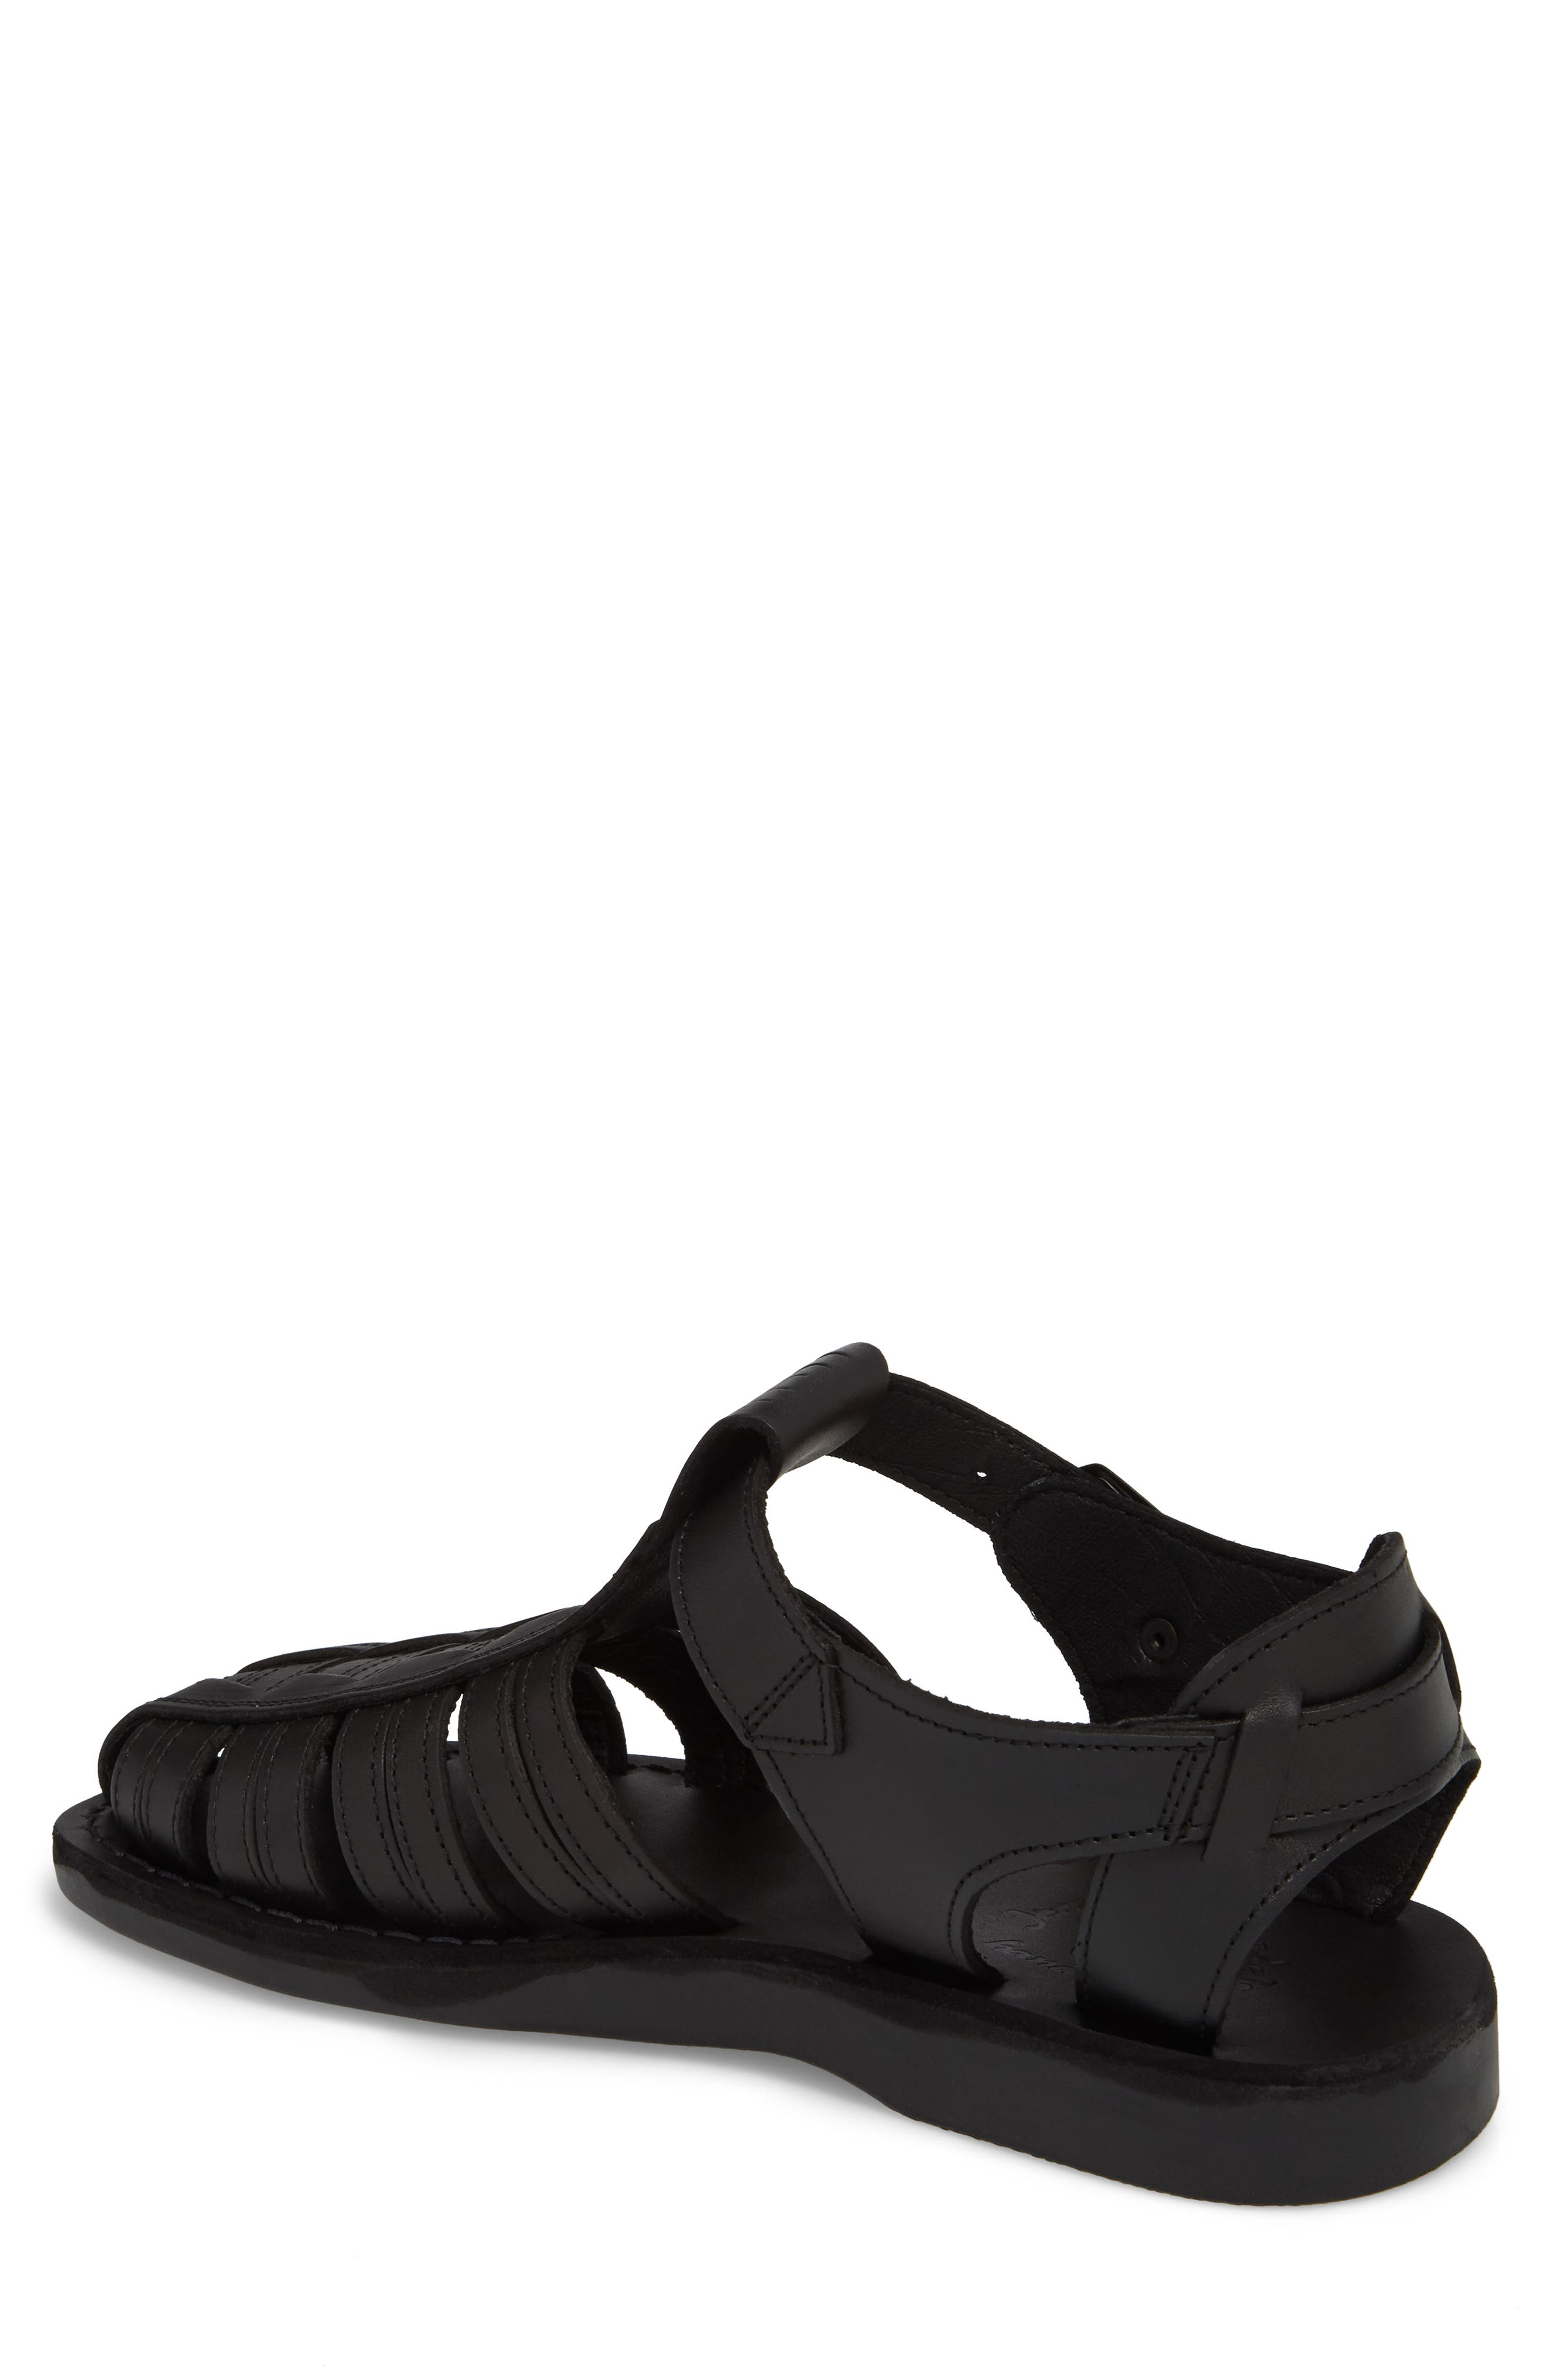 JERUSALEM SANDALS, Barak Fisherman Sandal, Alternate thumbnail 2, color, BLACK LEATHER